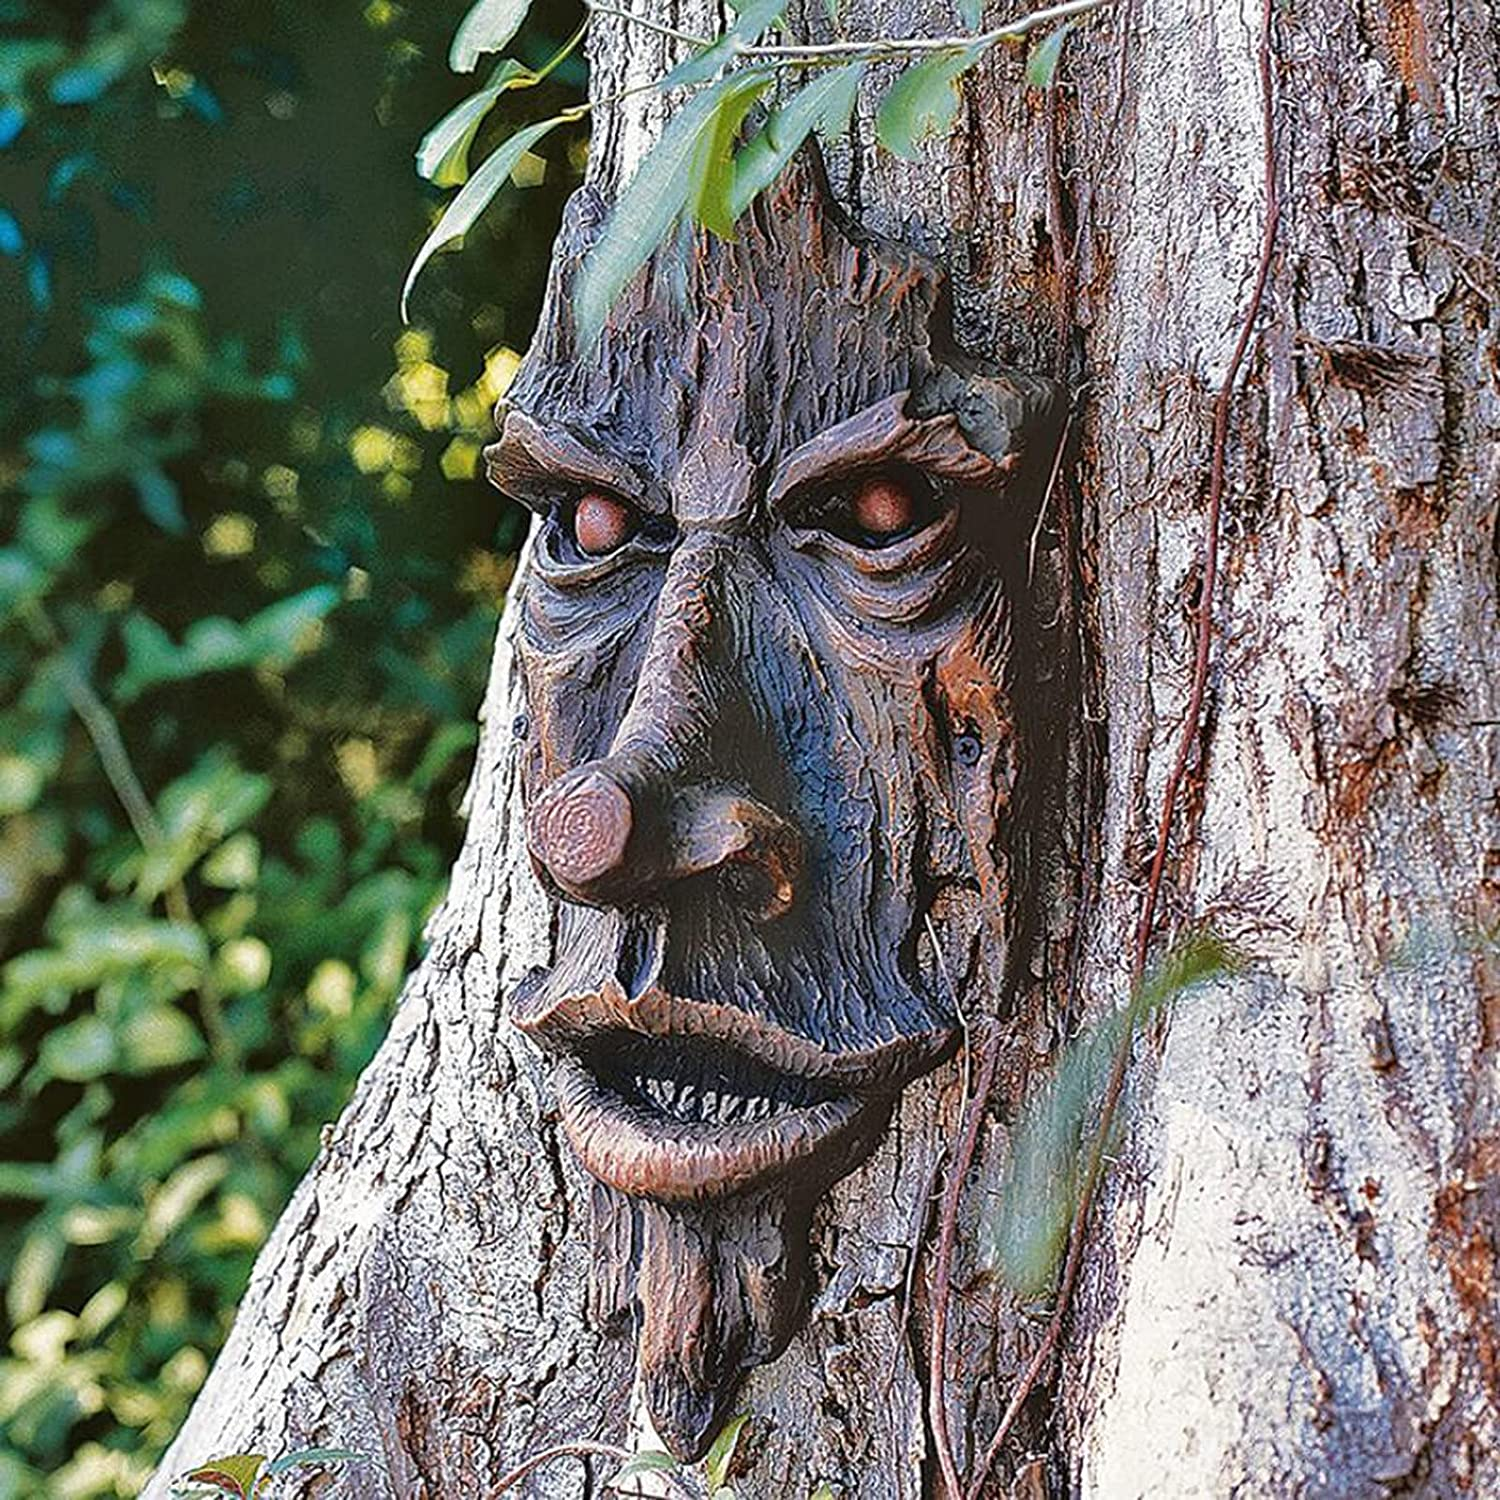 Tree Faces Decor Outdoor -Old Man Tree face,Old Man Tree Hugger,Bark Ghost Face Facial Features Decoration Art Bark Ghost Face Facial Features Decor (Black)